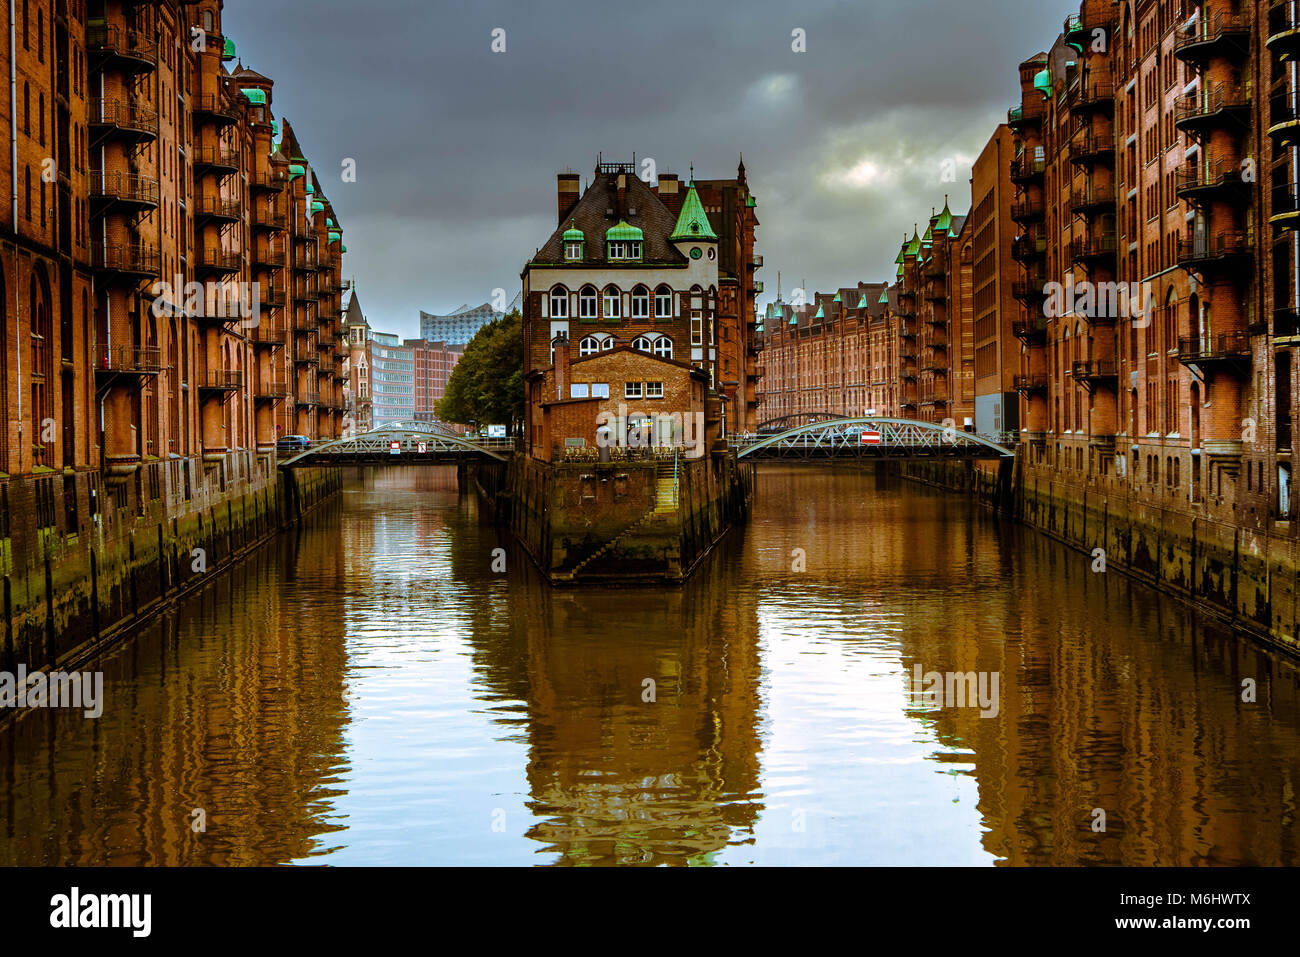 Historical buildings and canal in the Speicherstadt in Hamburg, Germany - Stock Image